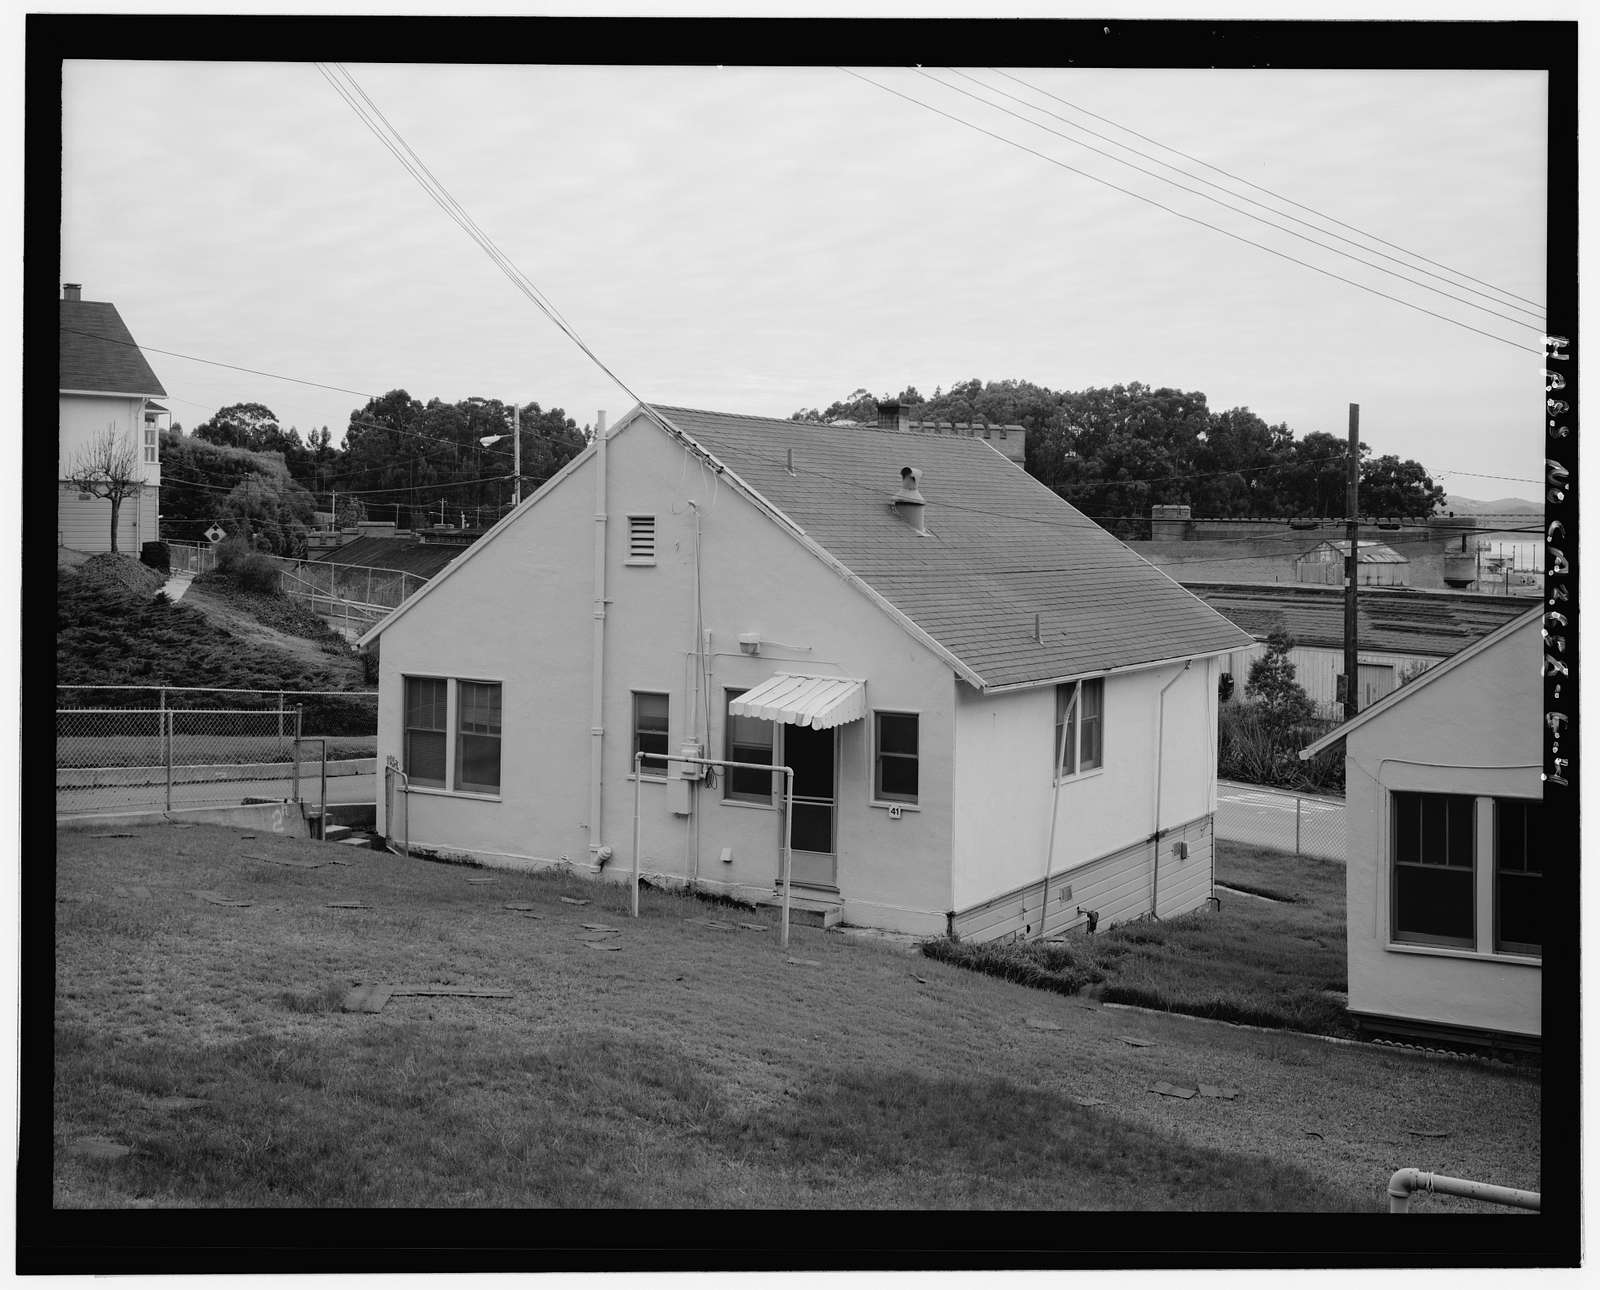 Winehaven, Two-Bedroom Cottage, Point Molate Naval Fuel Depot, Richmond, Contra Costa County, CA